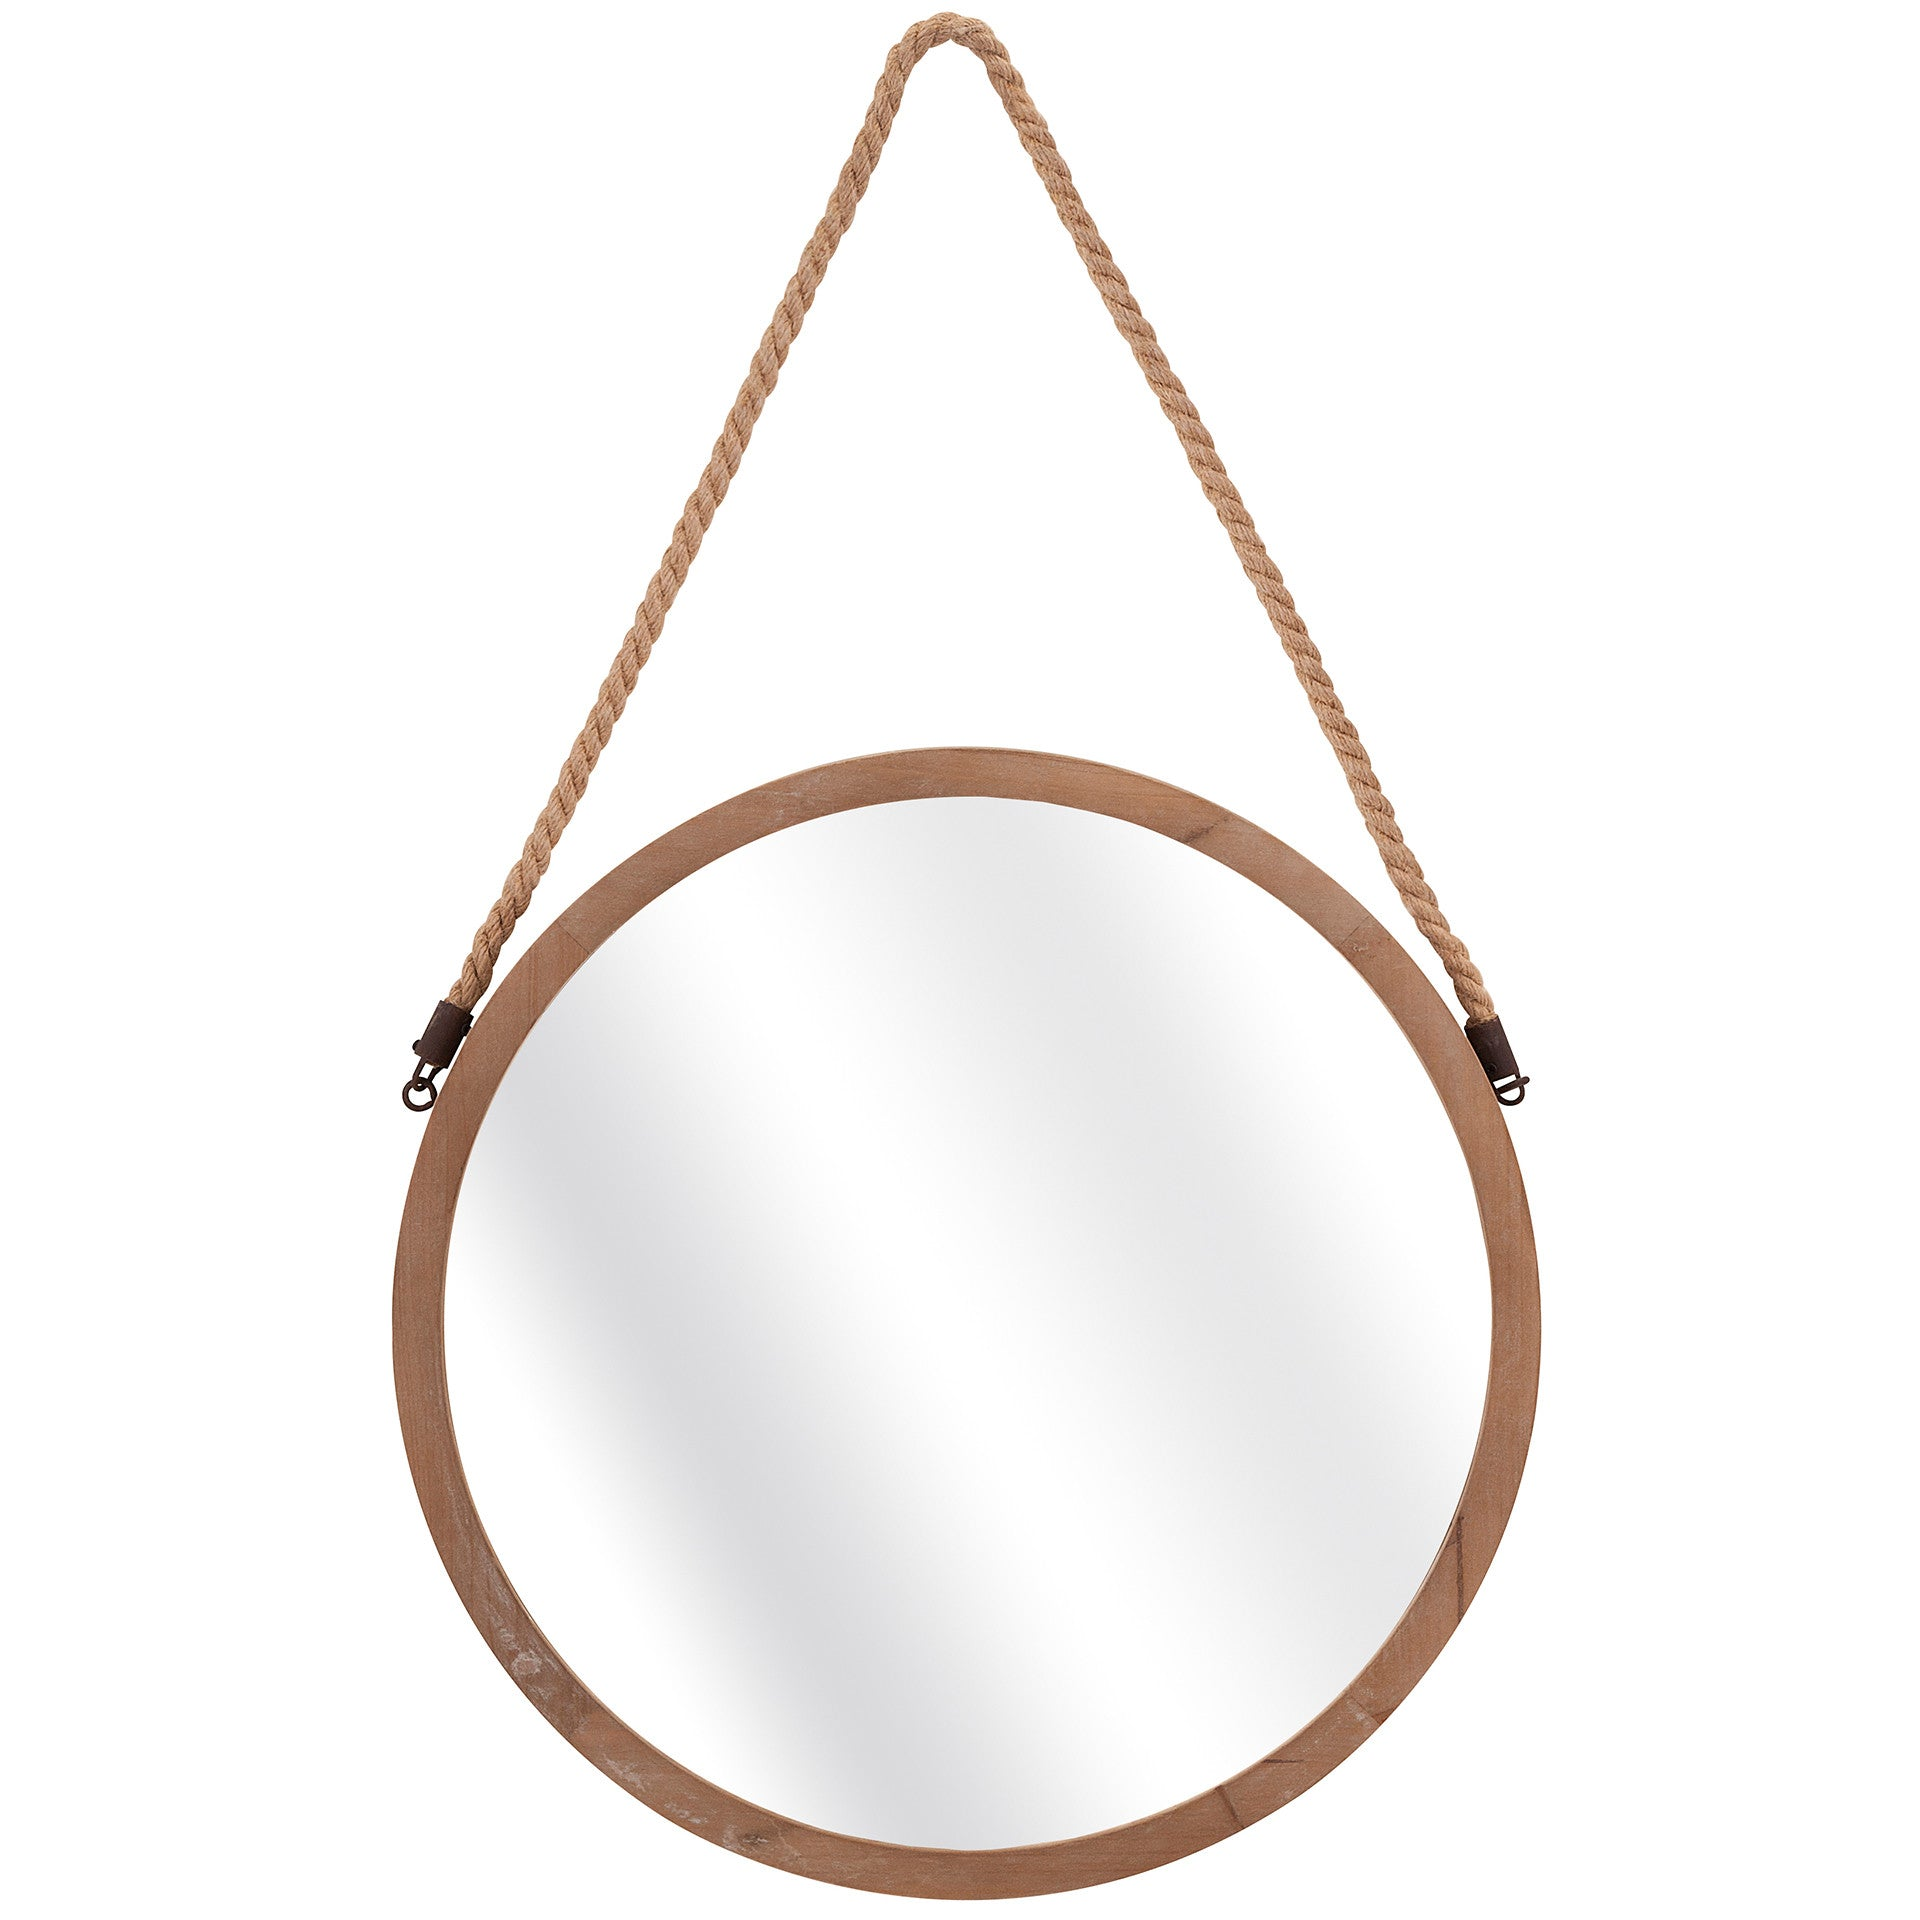 Round Wood Coastal Mirror With Rope